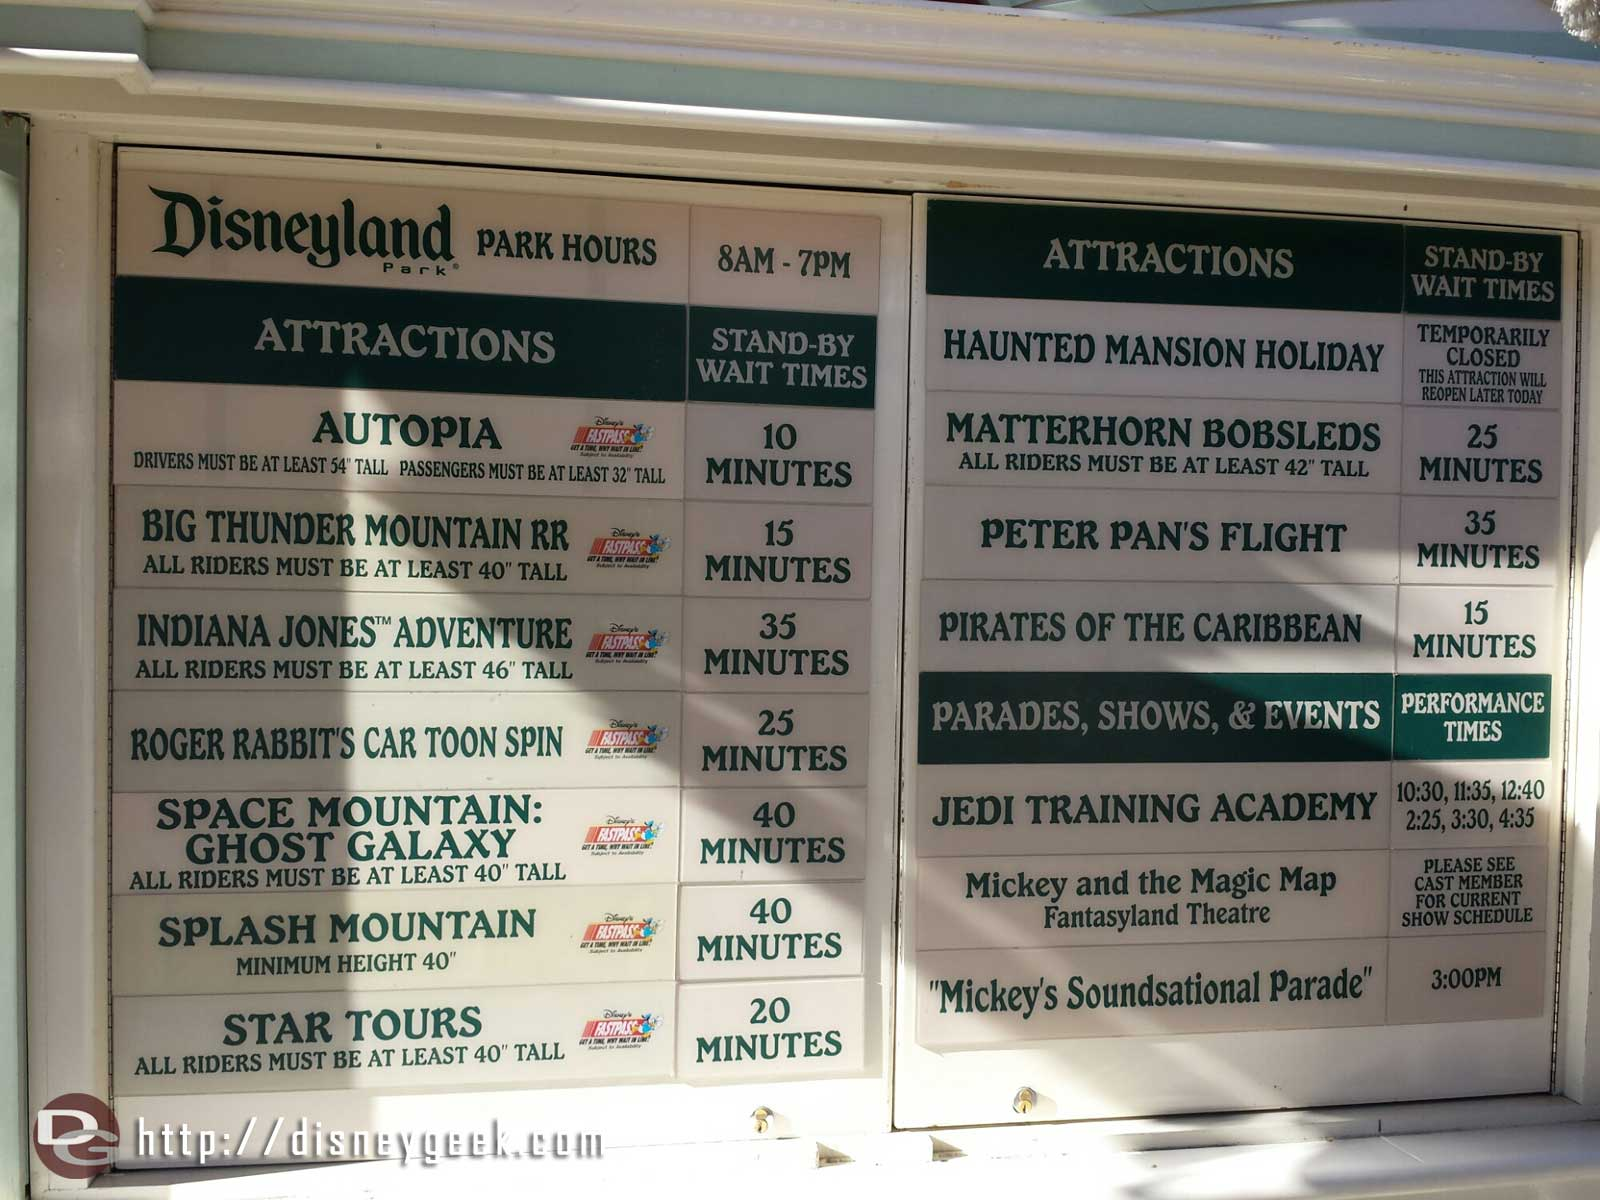 #Disneyland waits as of 3:48pm